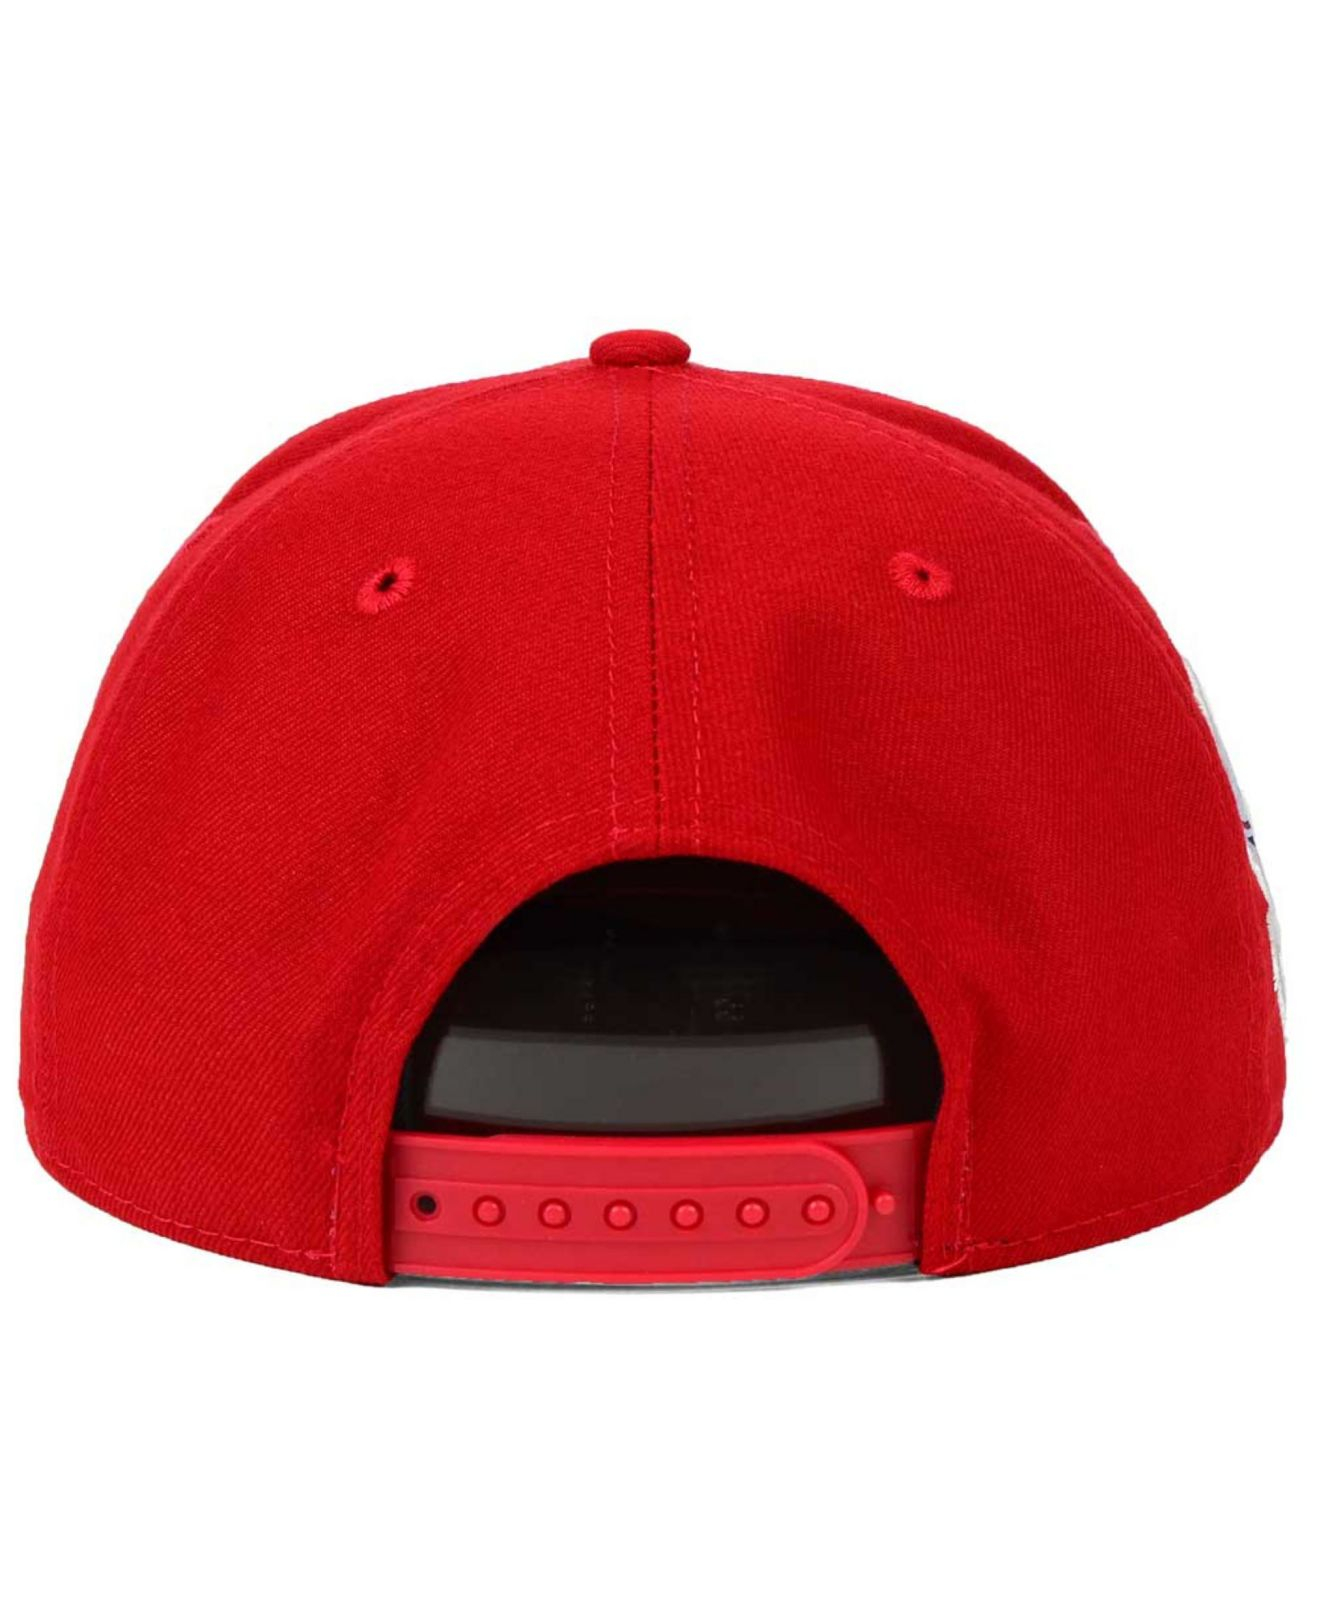 30bb9f38b32 Lyst - KTZ Los Angeles Angels Of Anaheim Champ Collection 9Fifty ...